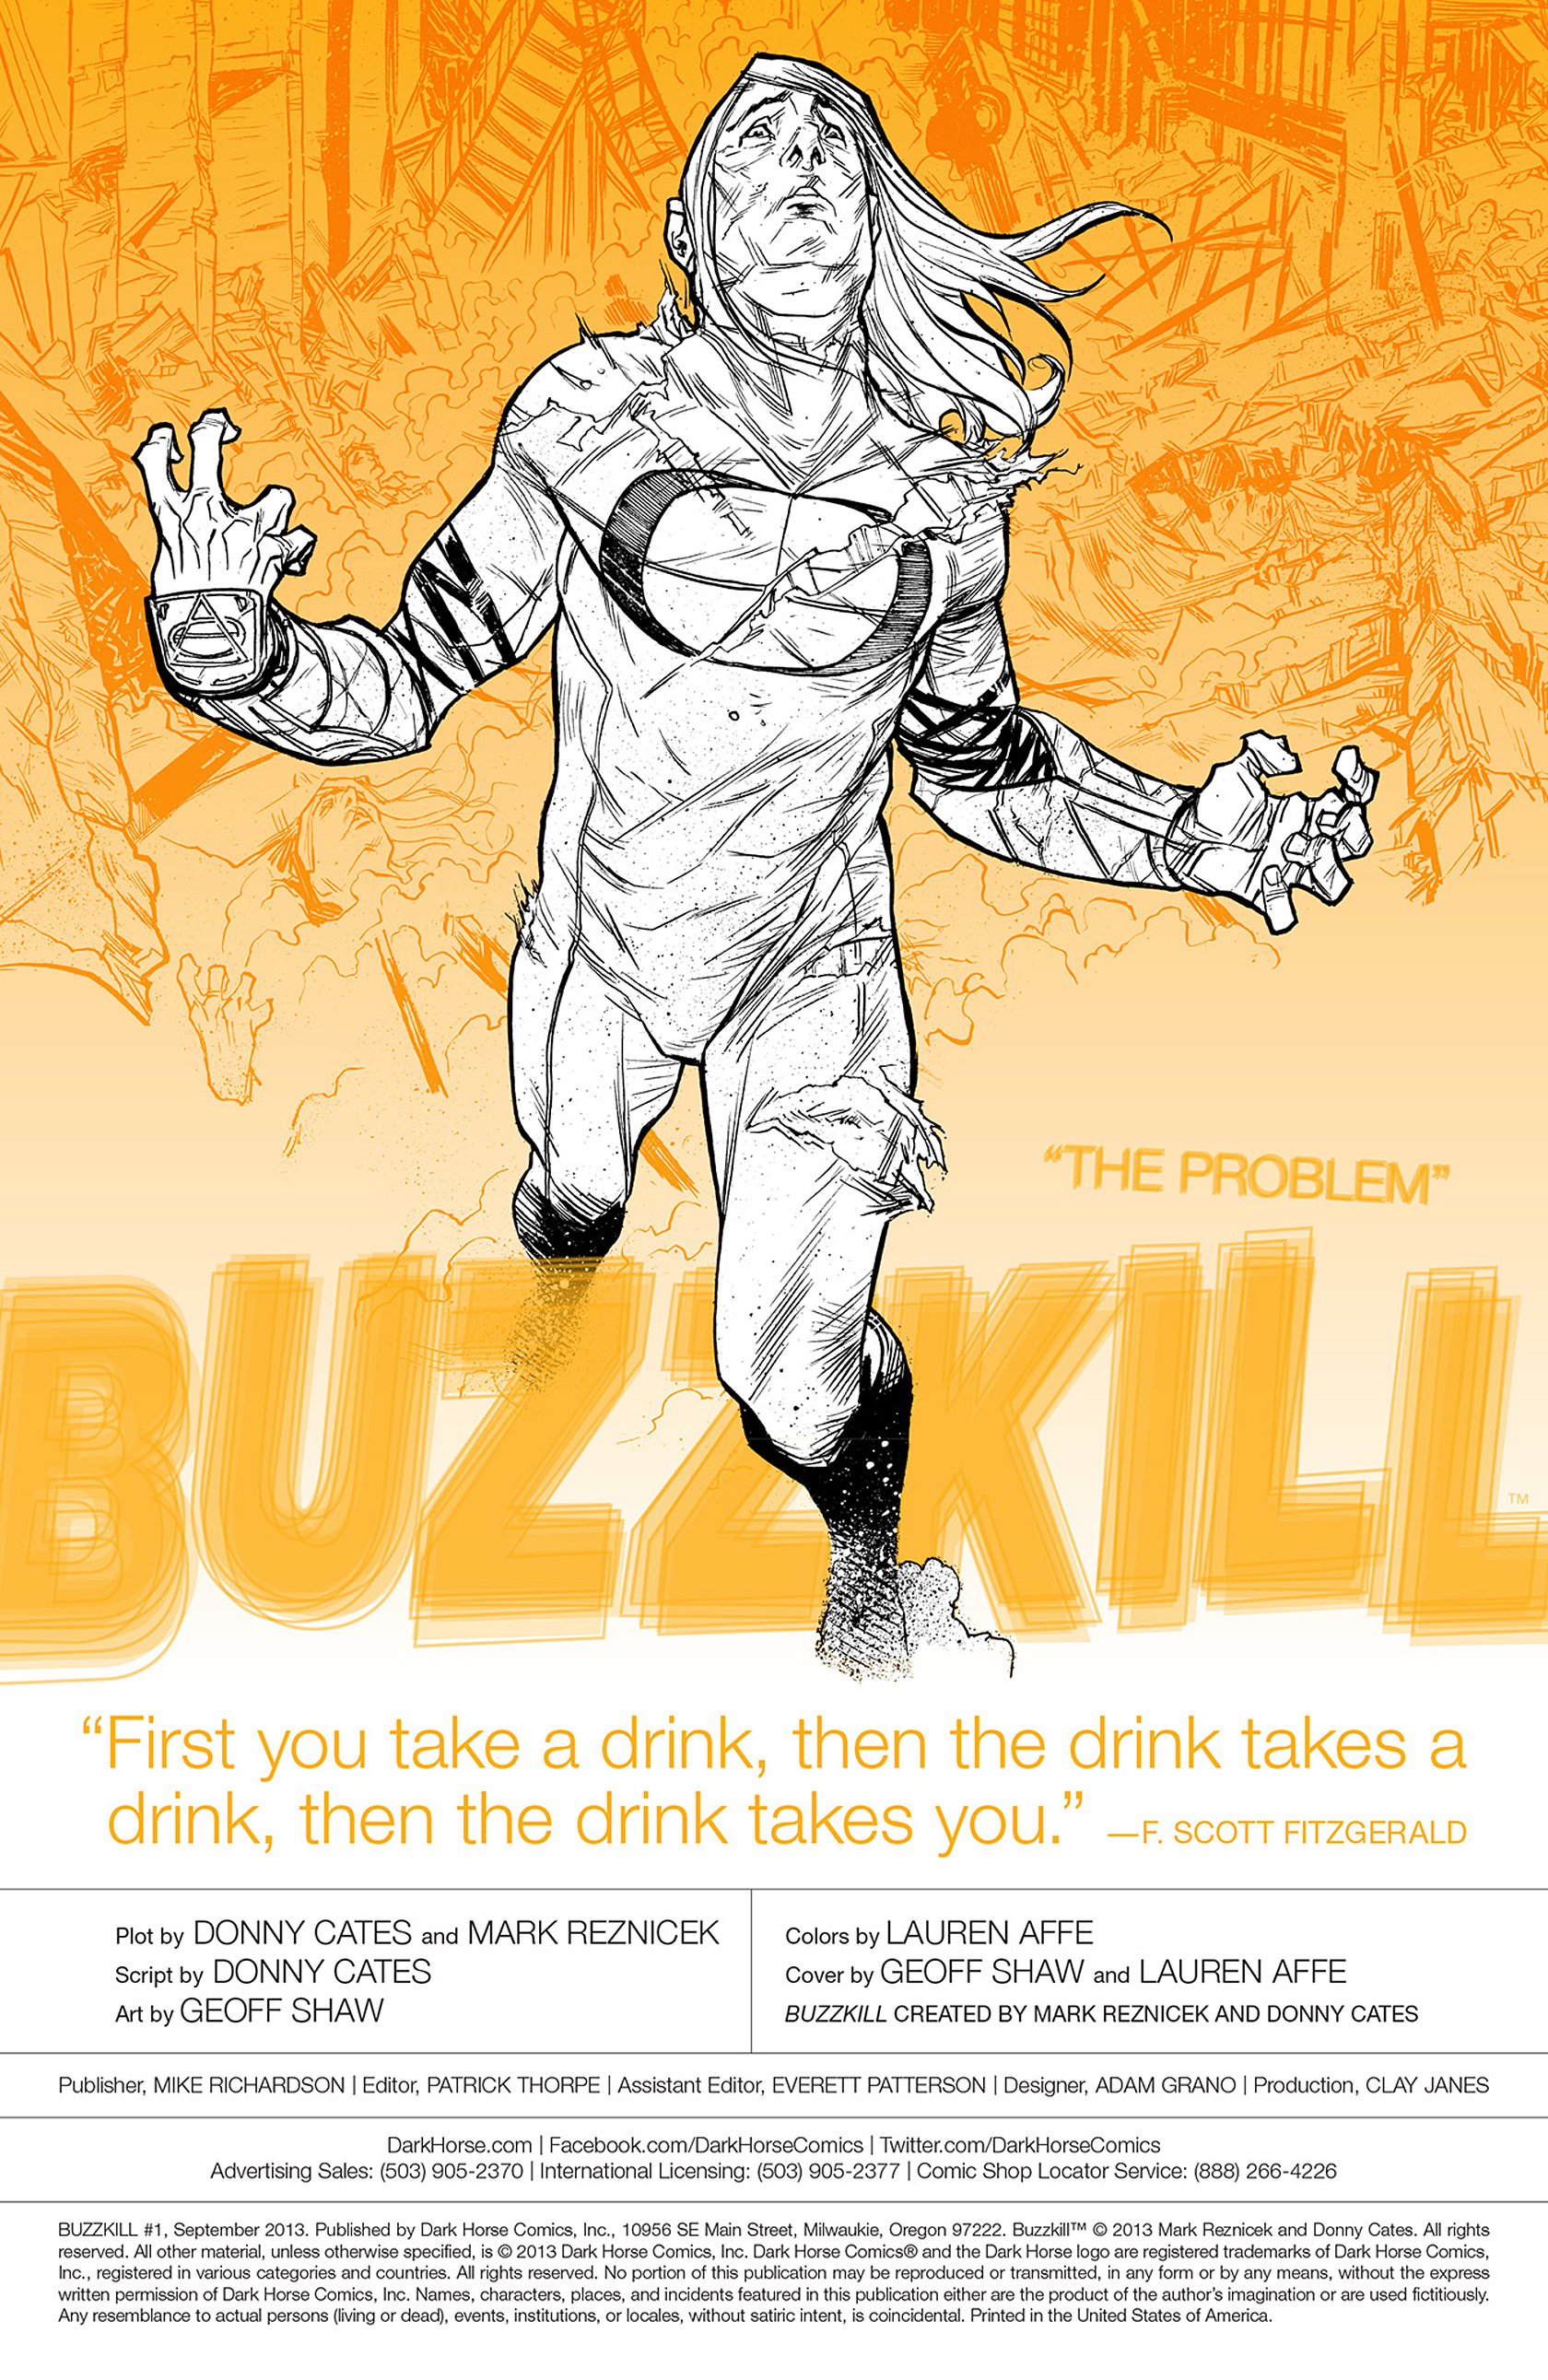 Read online Buzzkill comic -  Issue #1 - 2